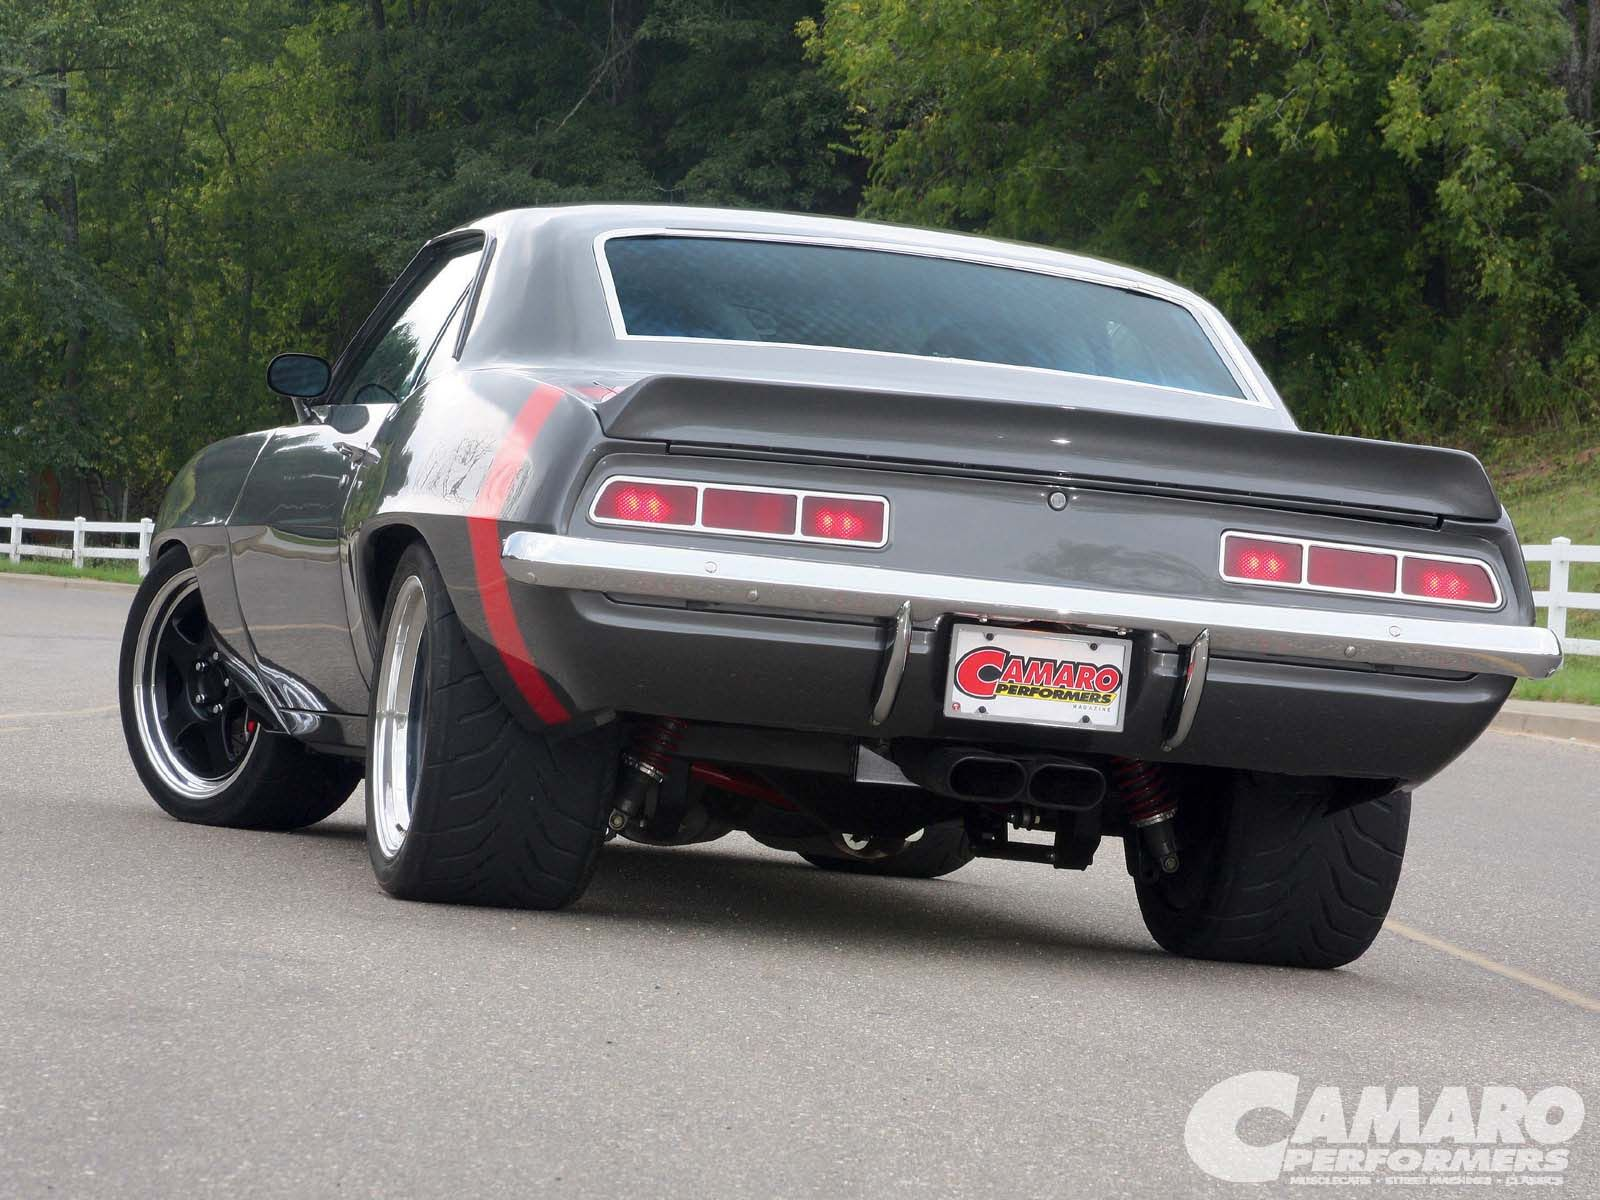 Jim Mulvey Bought A Completely Restored And Modernized 1969 Chevy Camaro SS  But It Had Too Much Of A Pro Street Attitude, So He Took The Whole Car  Apart ...